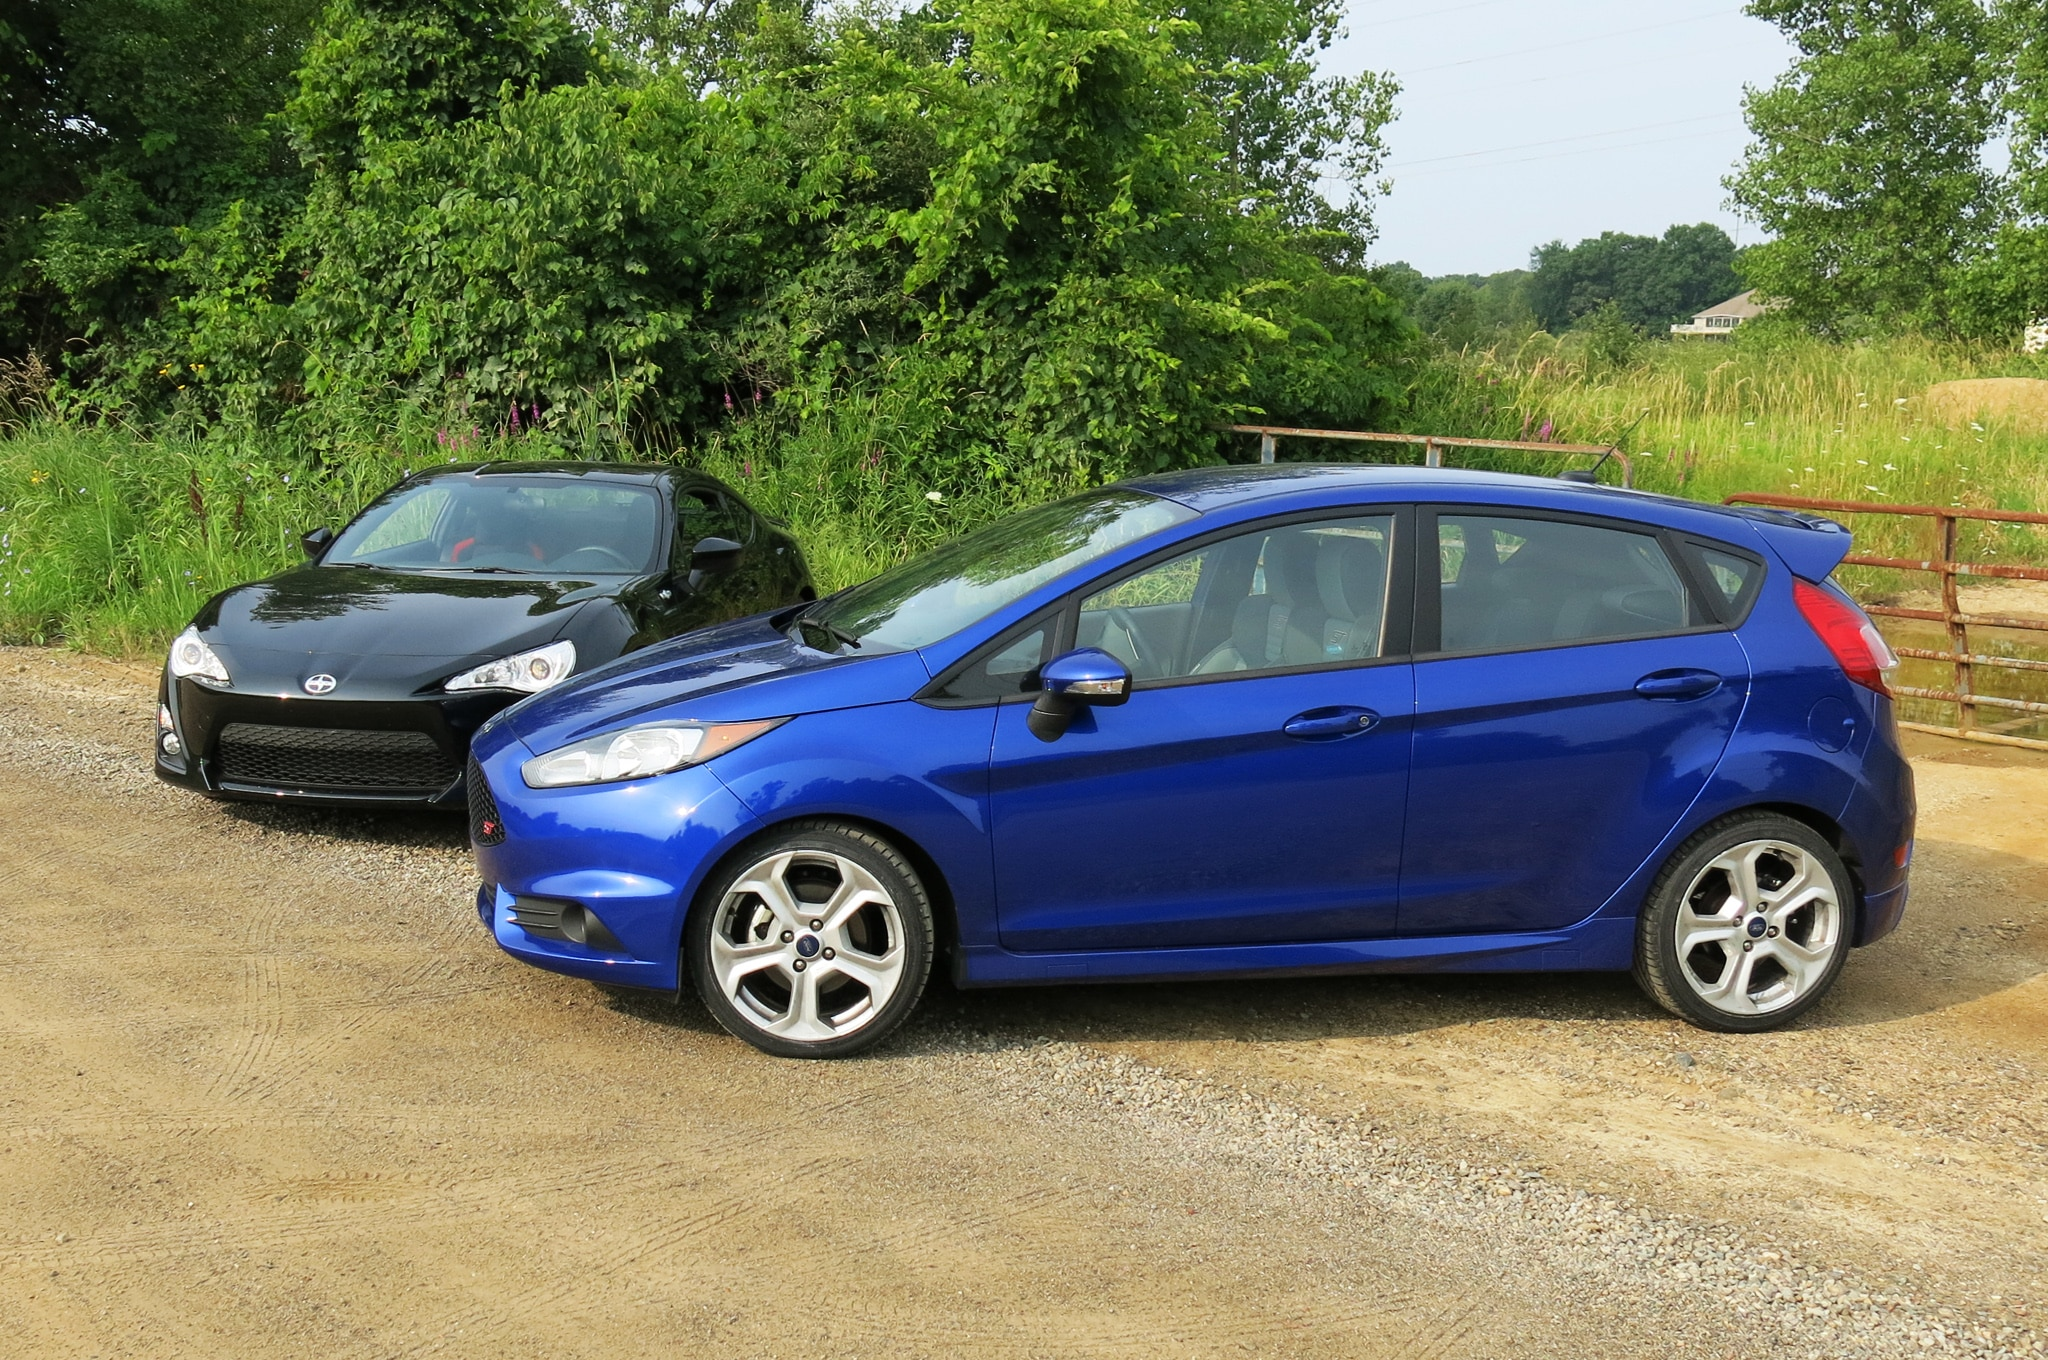 2014 ford fiesta st more fun than a scion fr s. Black Bedroom Furniture Sets. Home Design Ideas